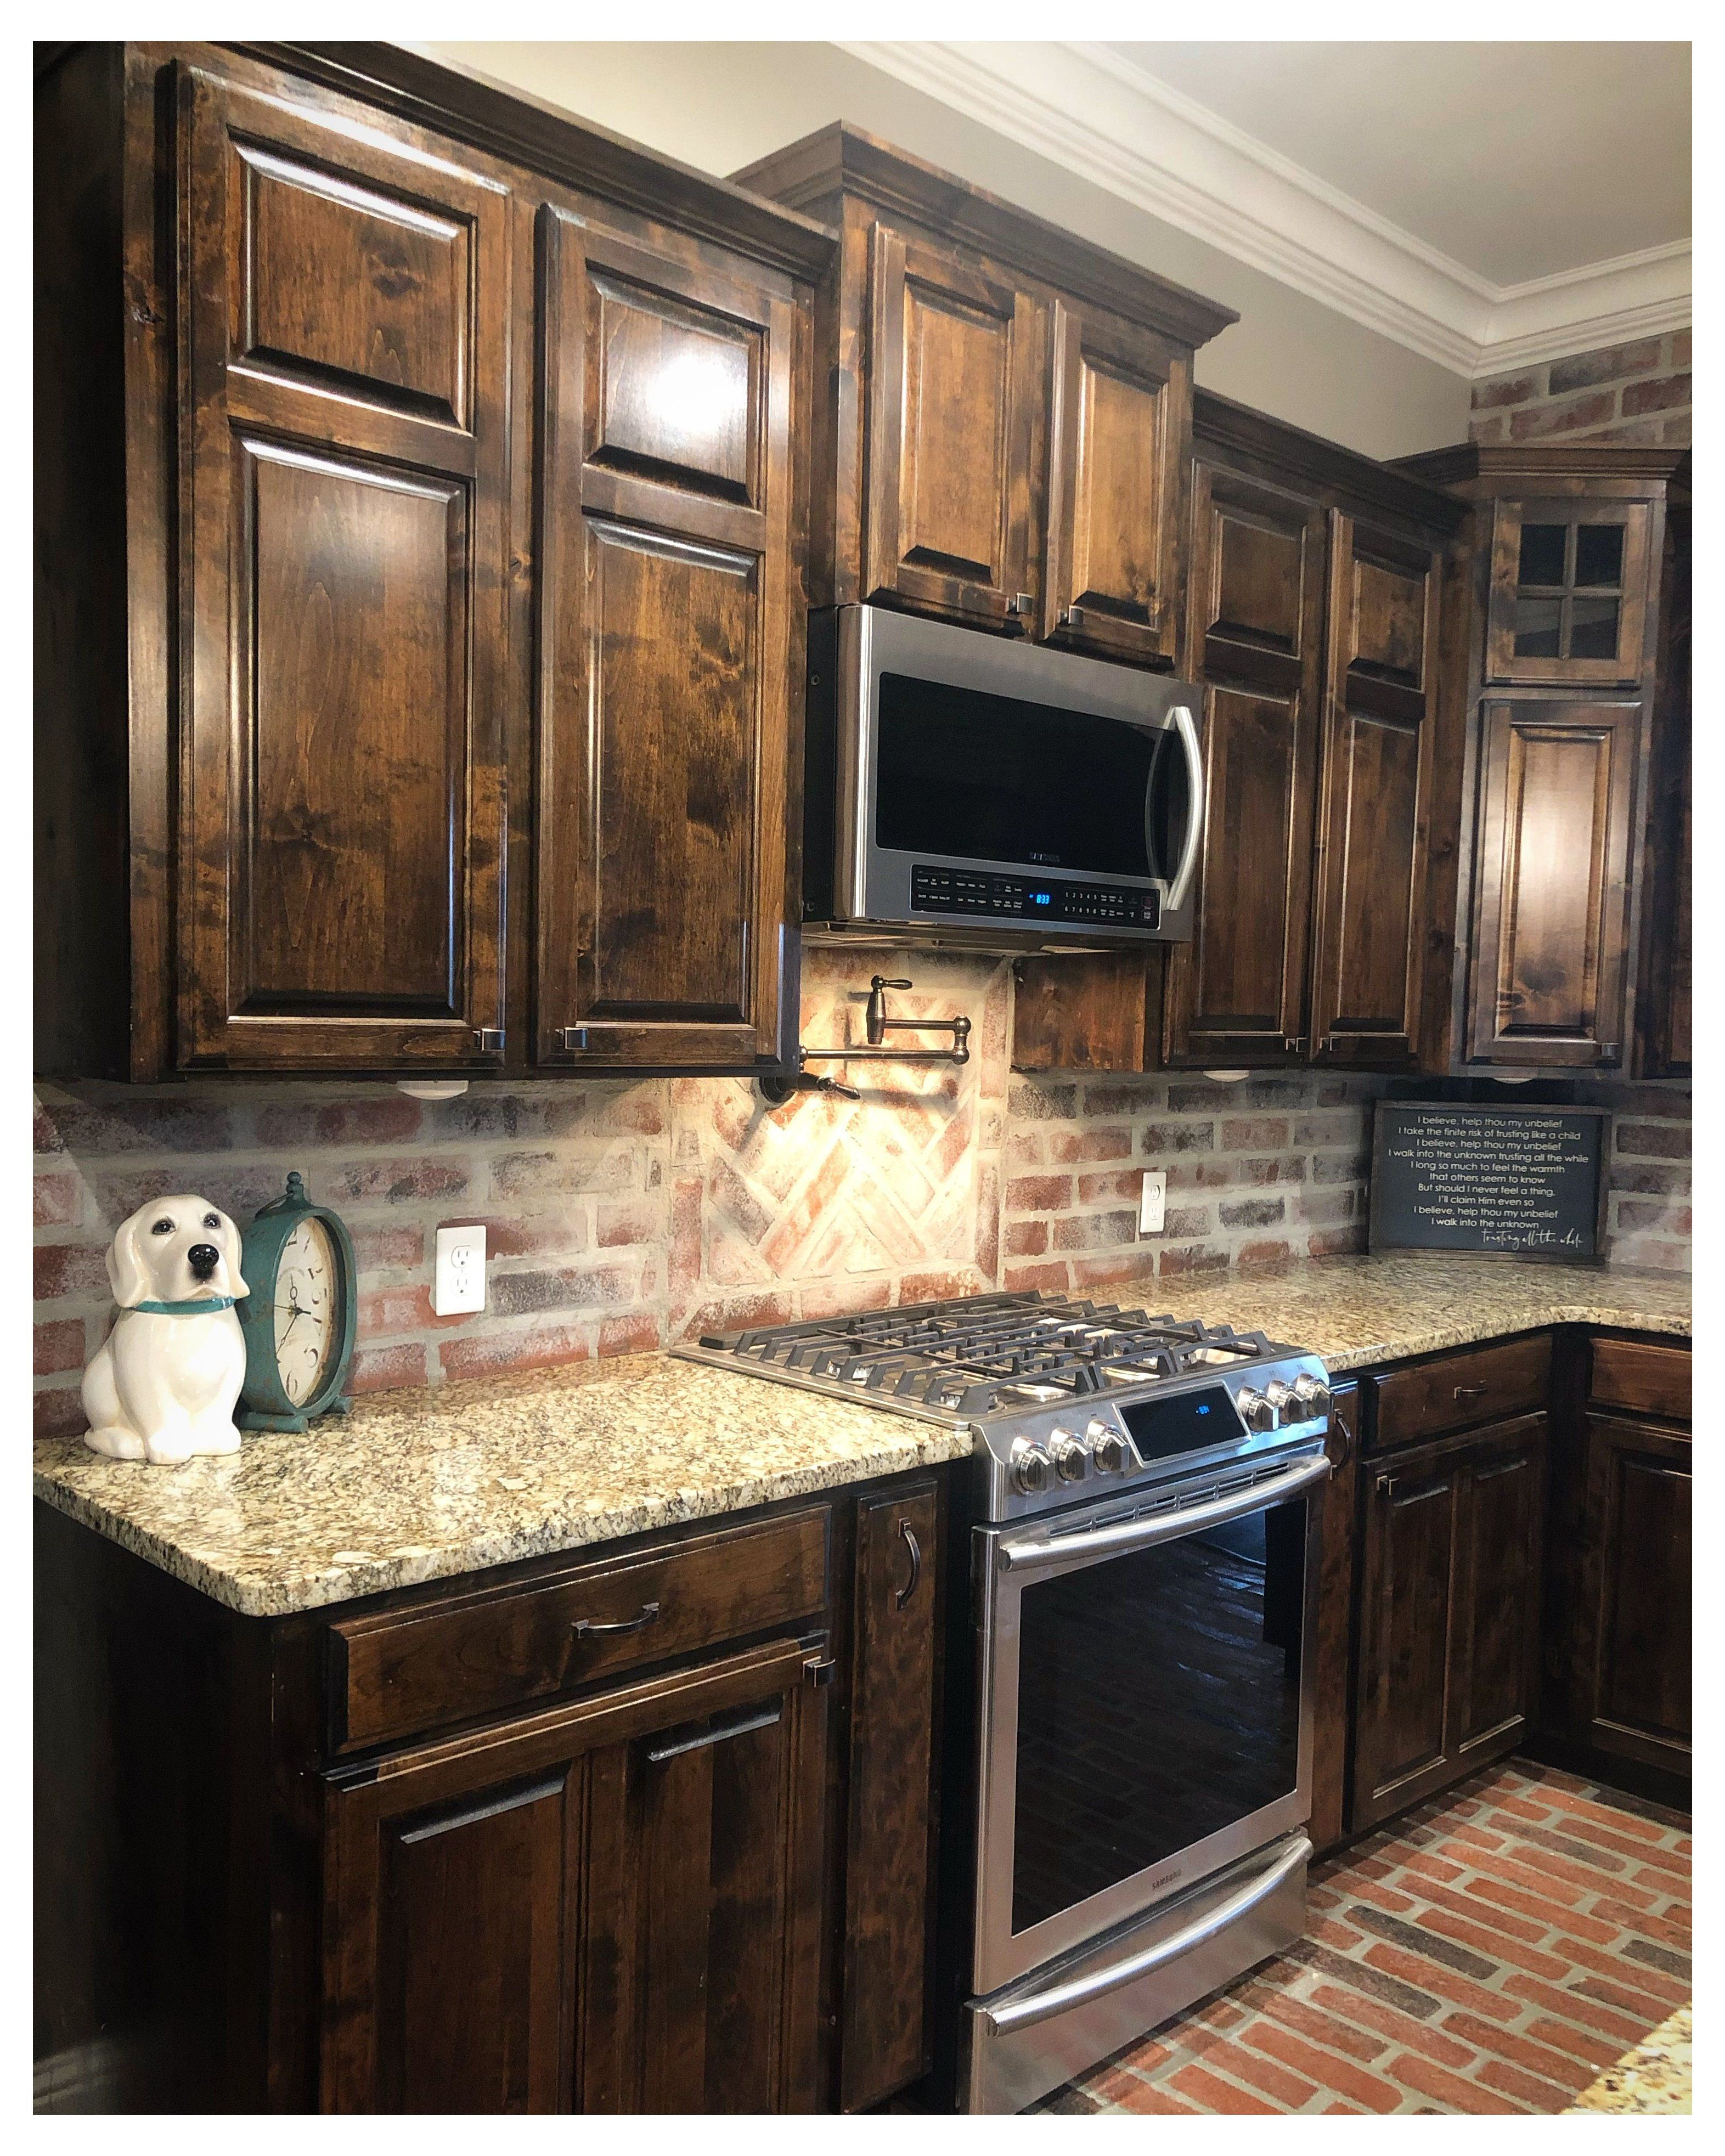 Pin By Leslie Bautista On Home Rennovations In 2020 Stained Kitchen Cabinets Dark Wood Kitchen Cabinets Backsplash Kitchen Dark Cabinets